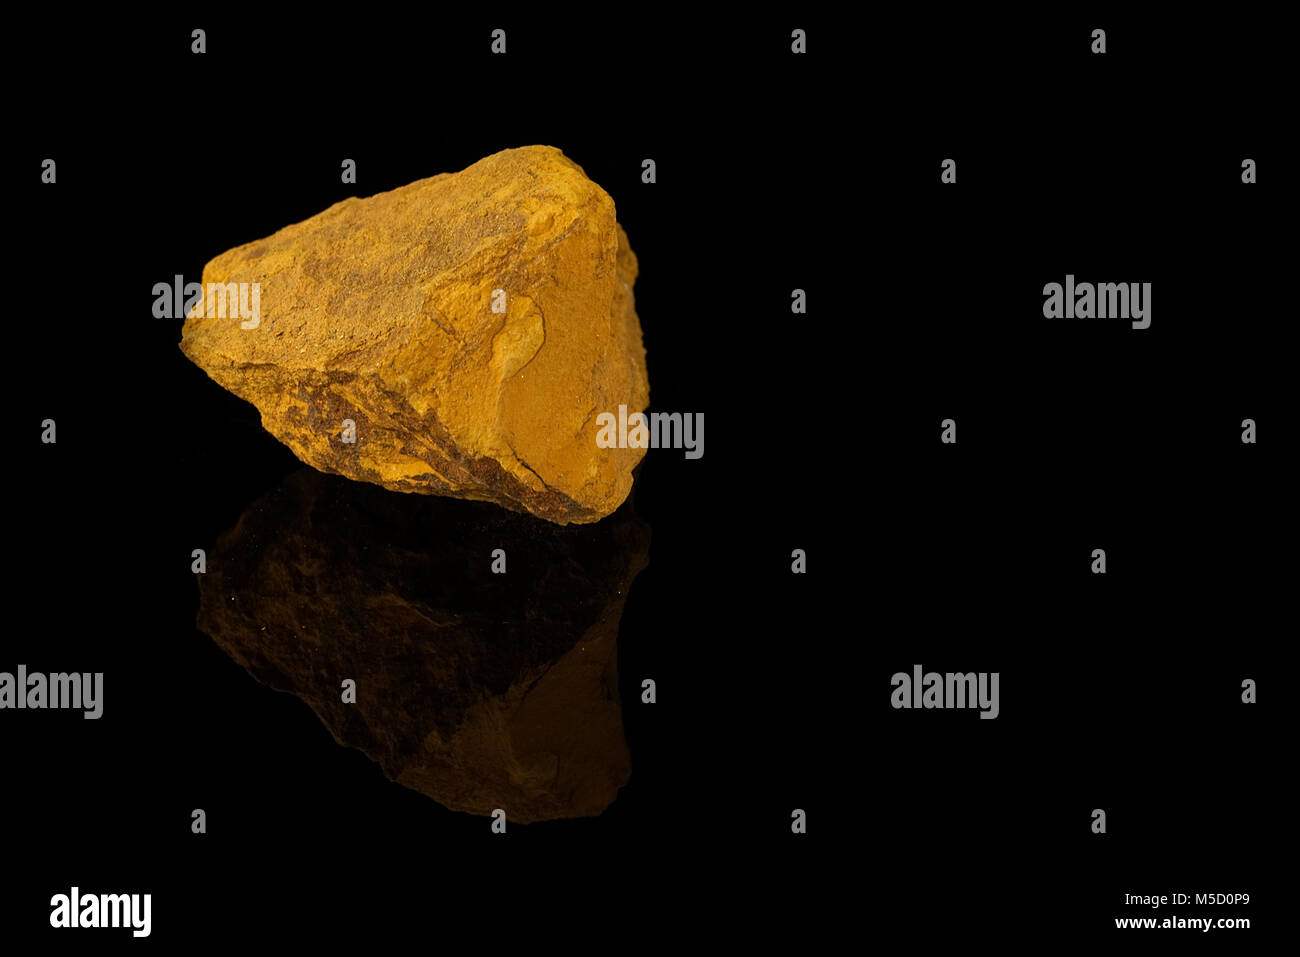 Limonite, iron ore mineral, iron oxide-hydroxide, amorphous, mineraloid, fine grained aggregate with powdery coating - Stock Image